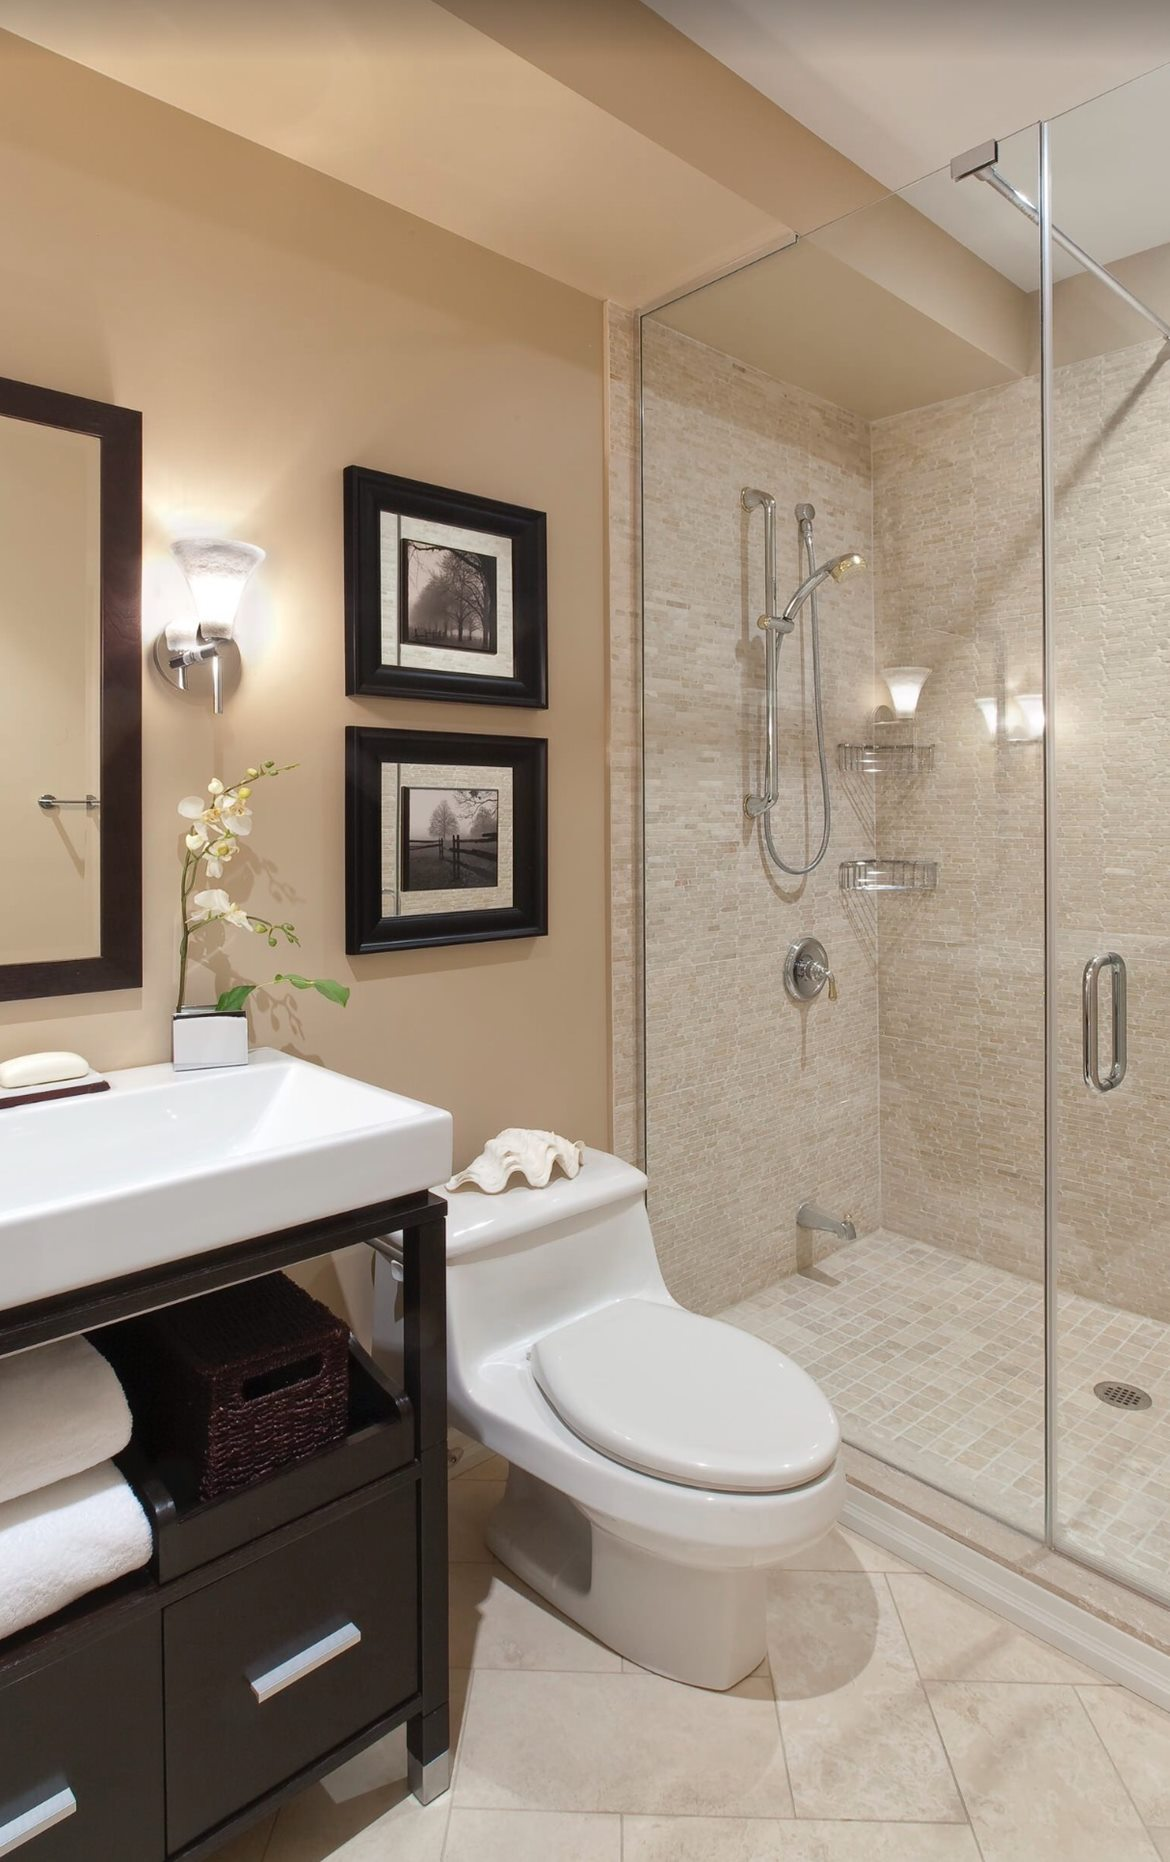 Bathroom renovations St Albans Queens NY